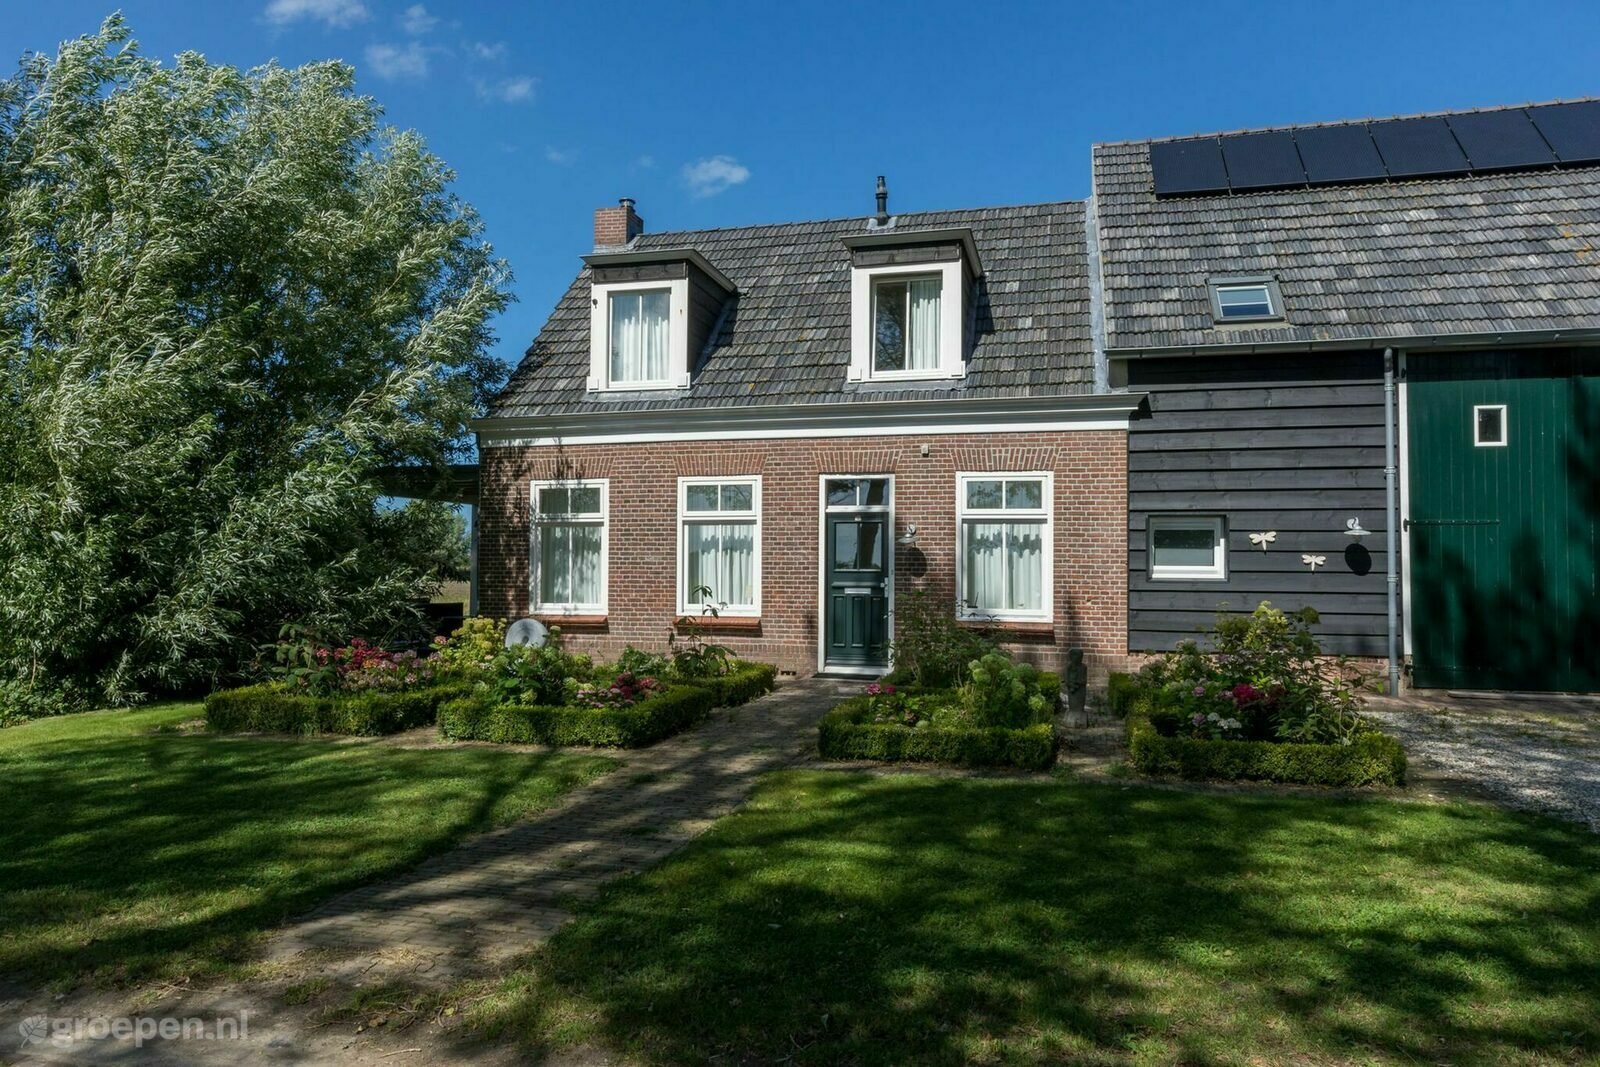 Holiday Farmhouse Vrouwenpolder